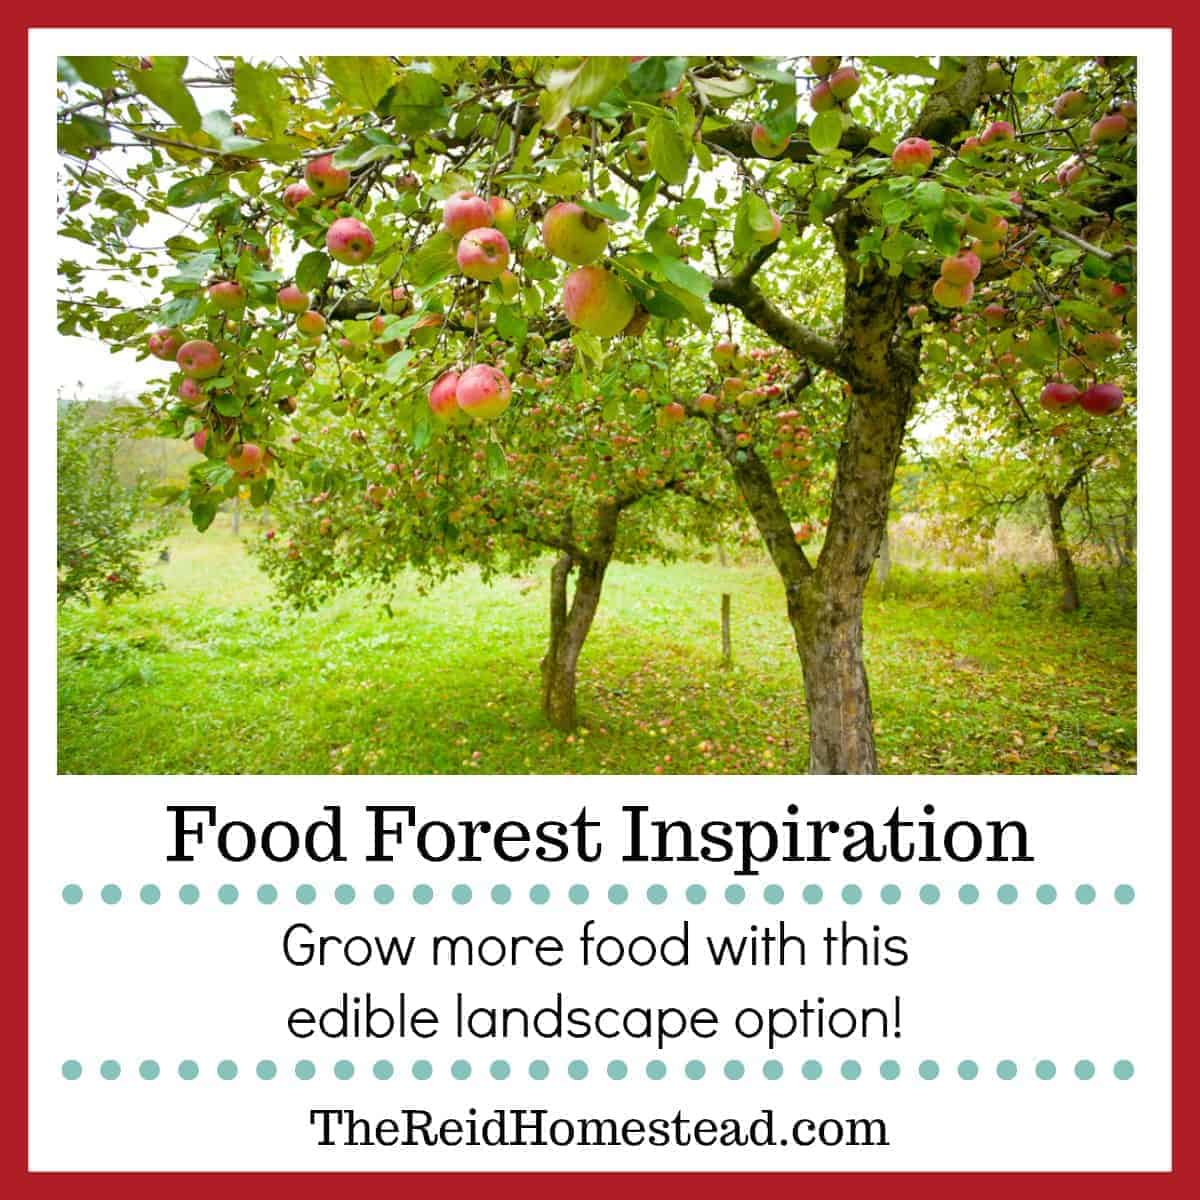 Food Forest Inspiration